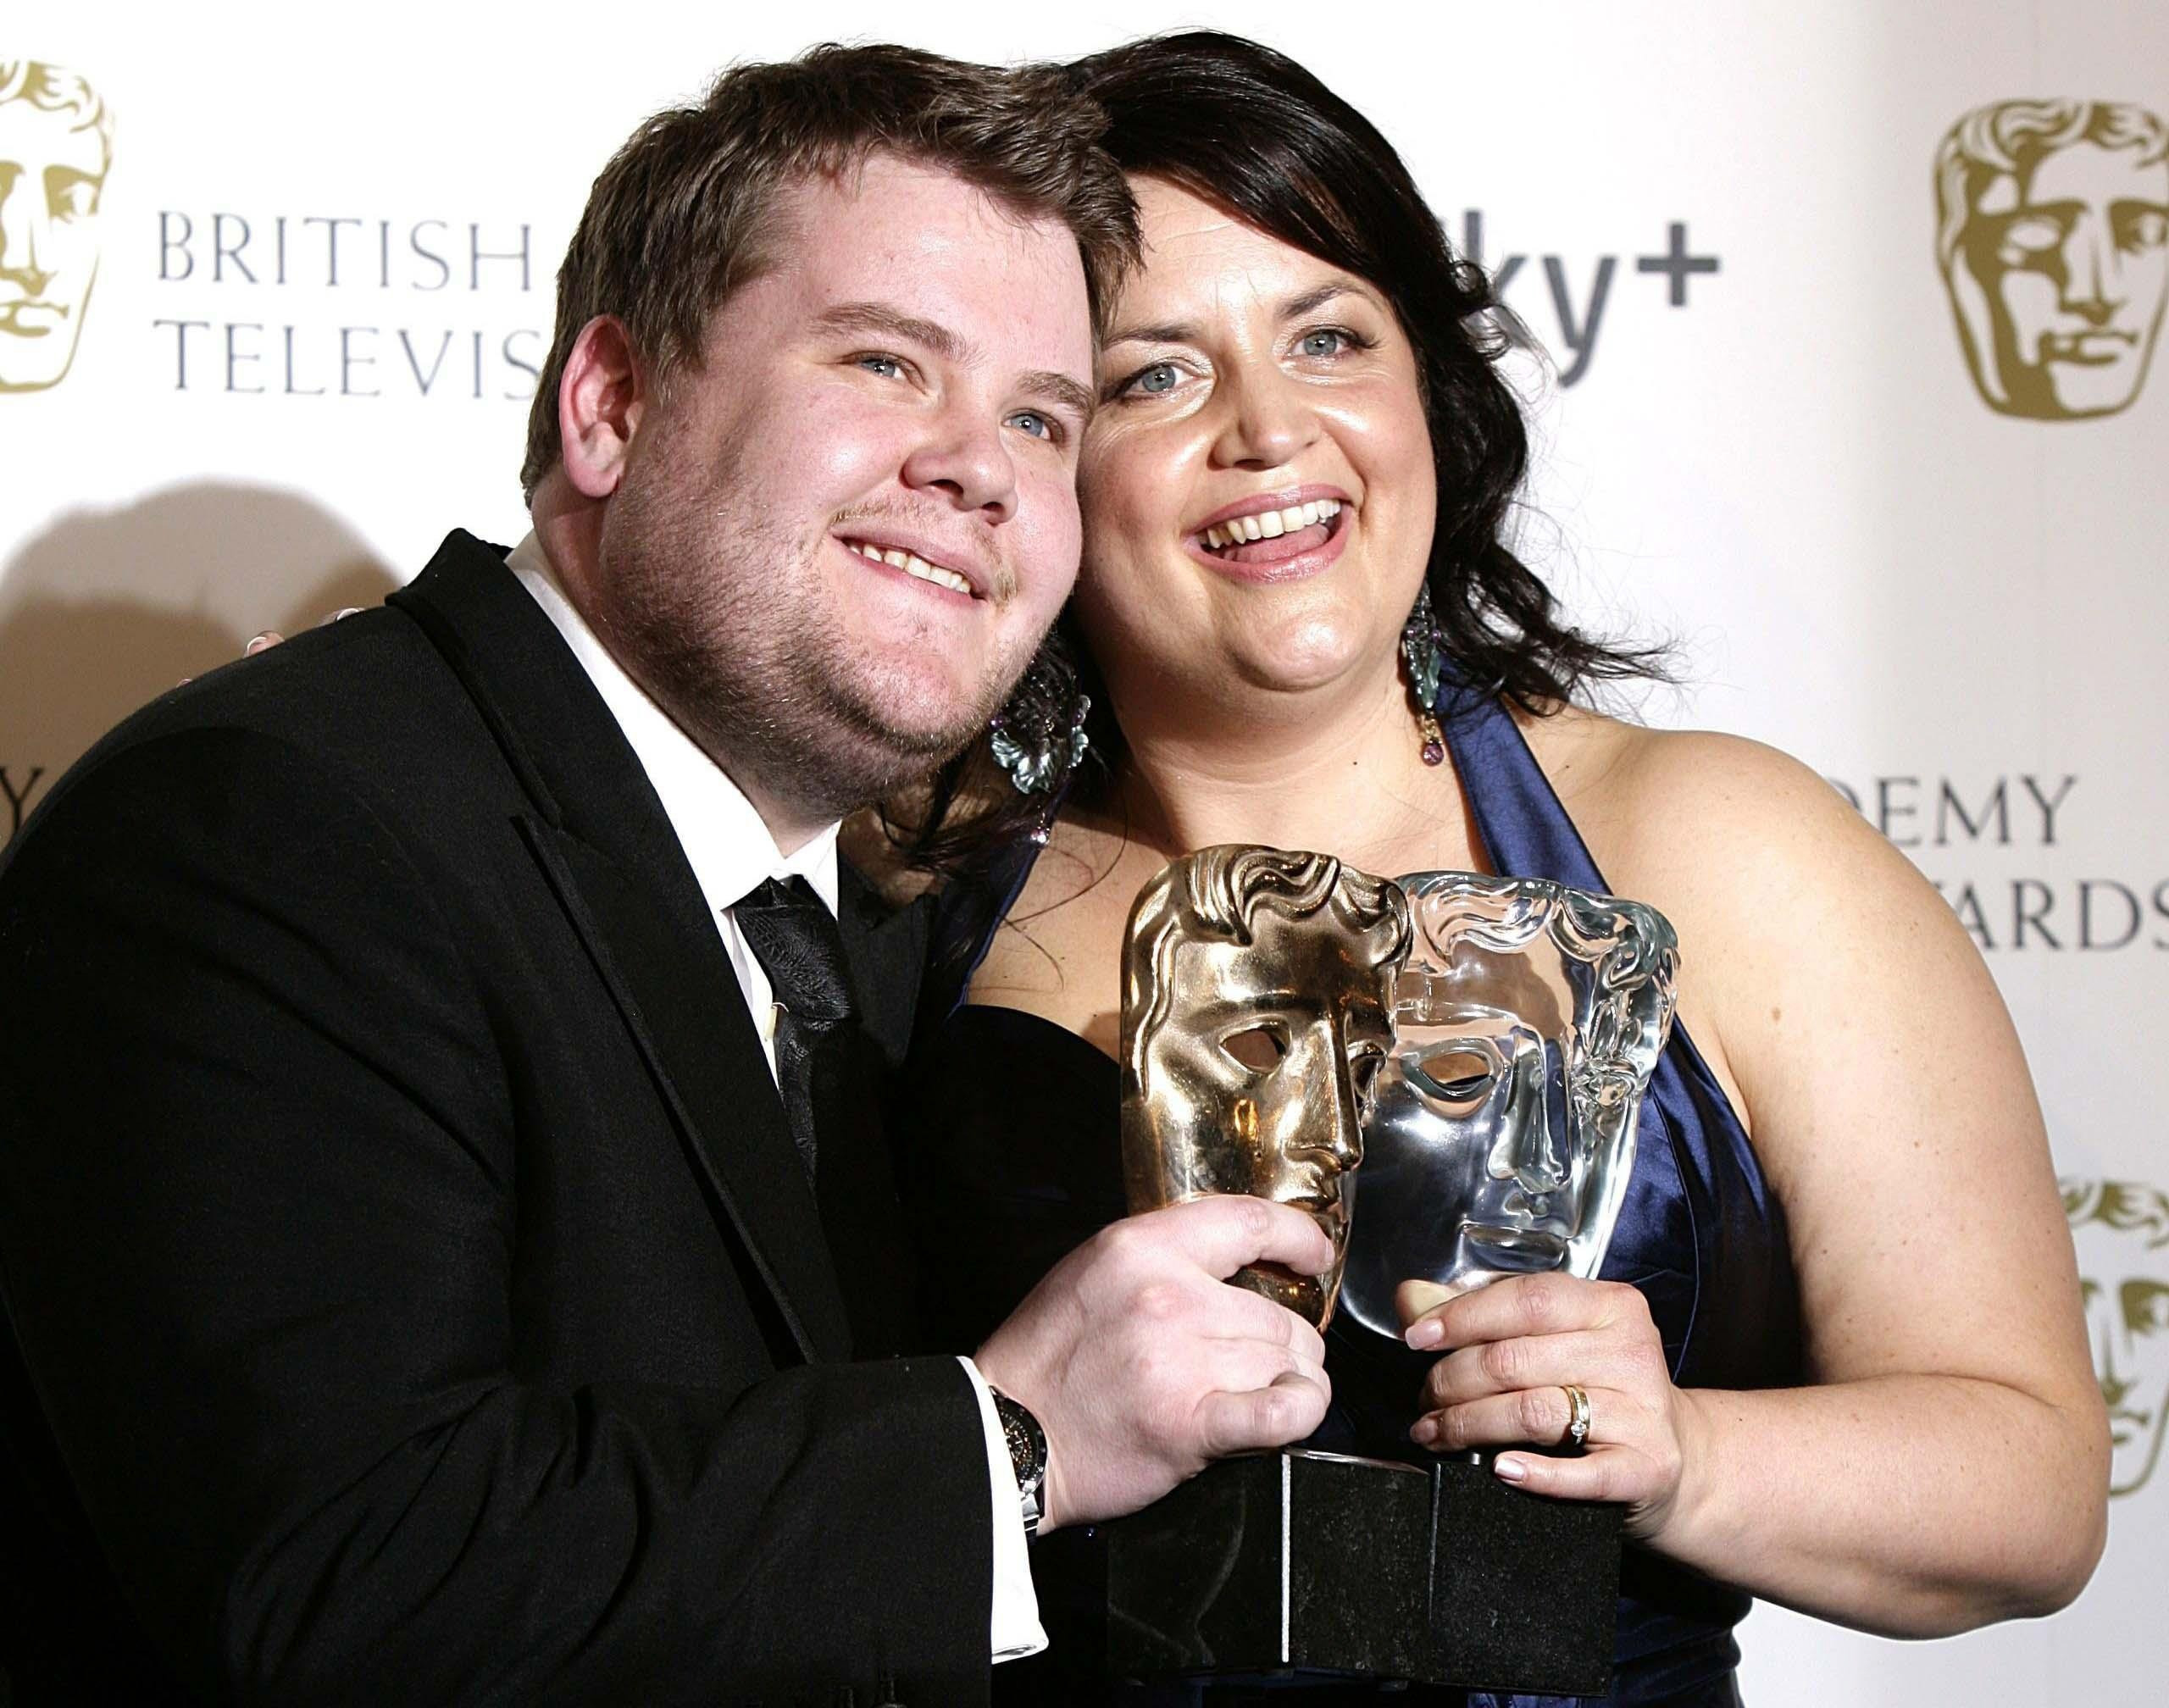 James Corden and Ruth Jones give big clue that Gavin and Stacey could return for another series